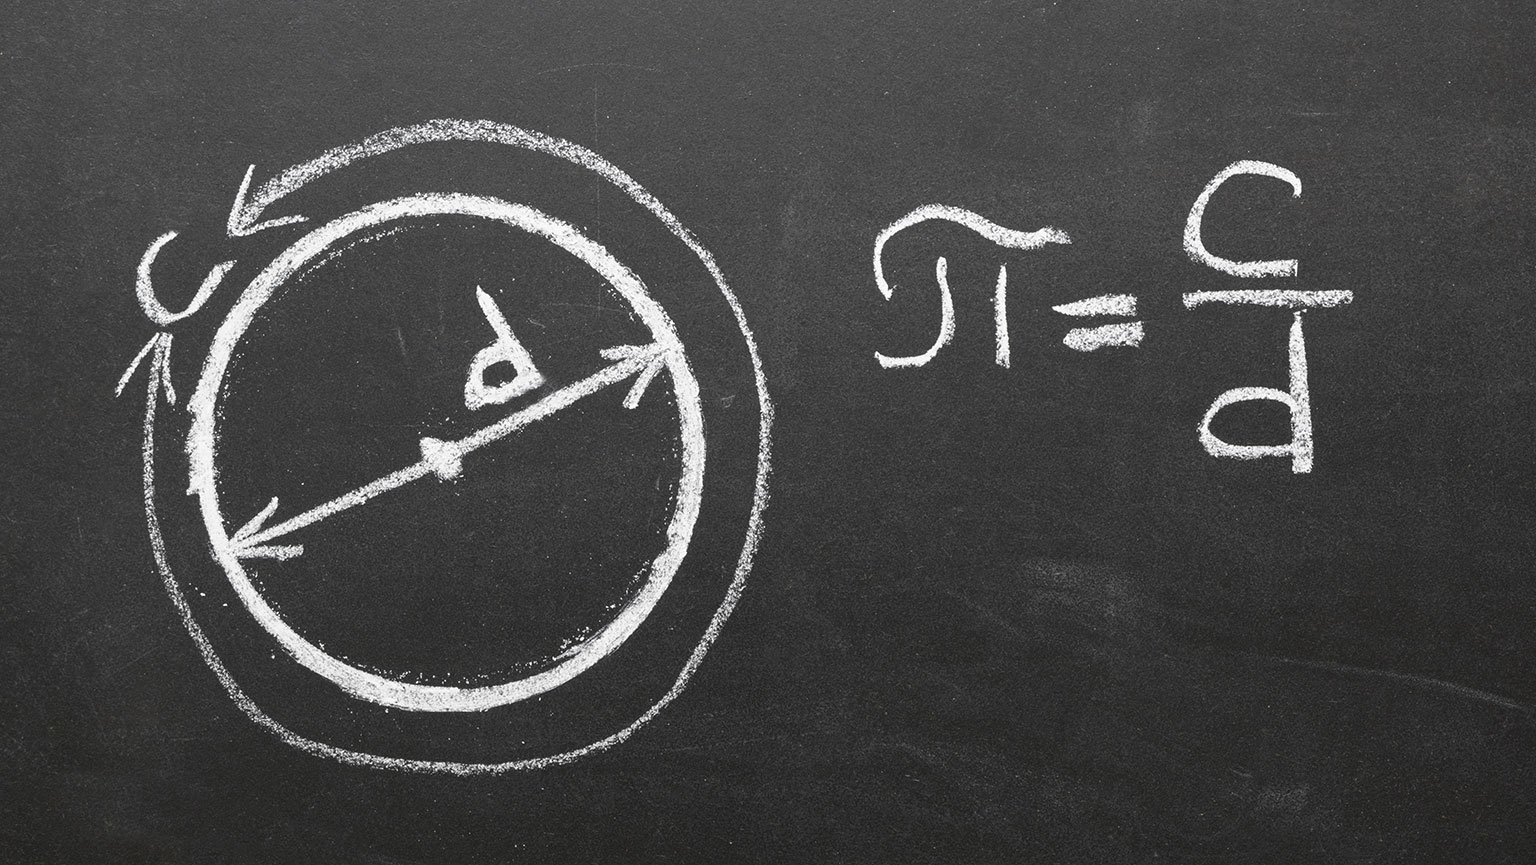 Pi is defined as the ratio of a circle's circumference and its diameter - Serious Facts